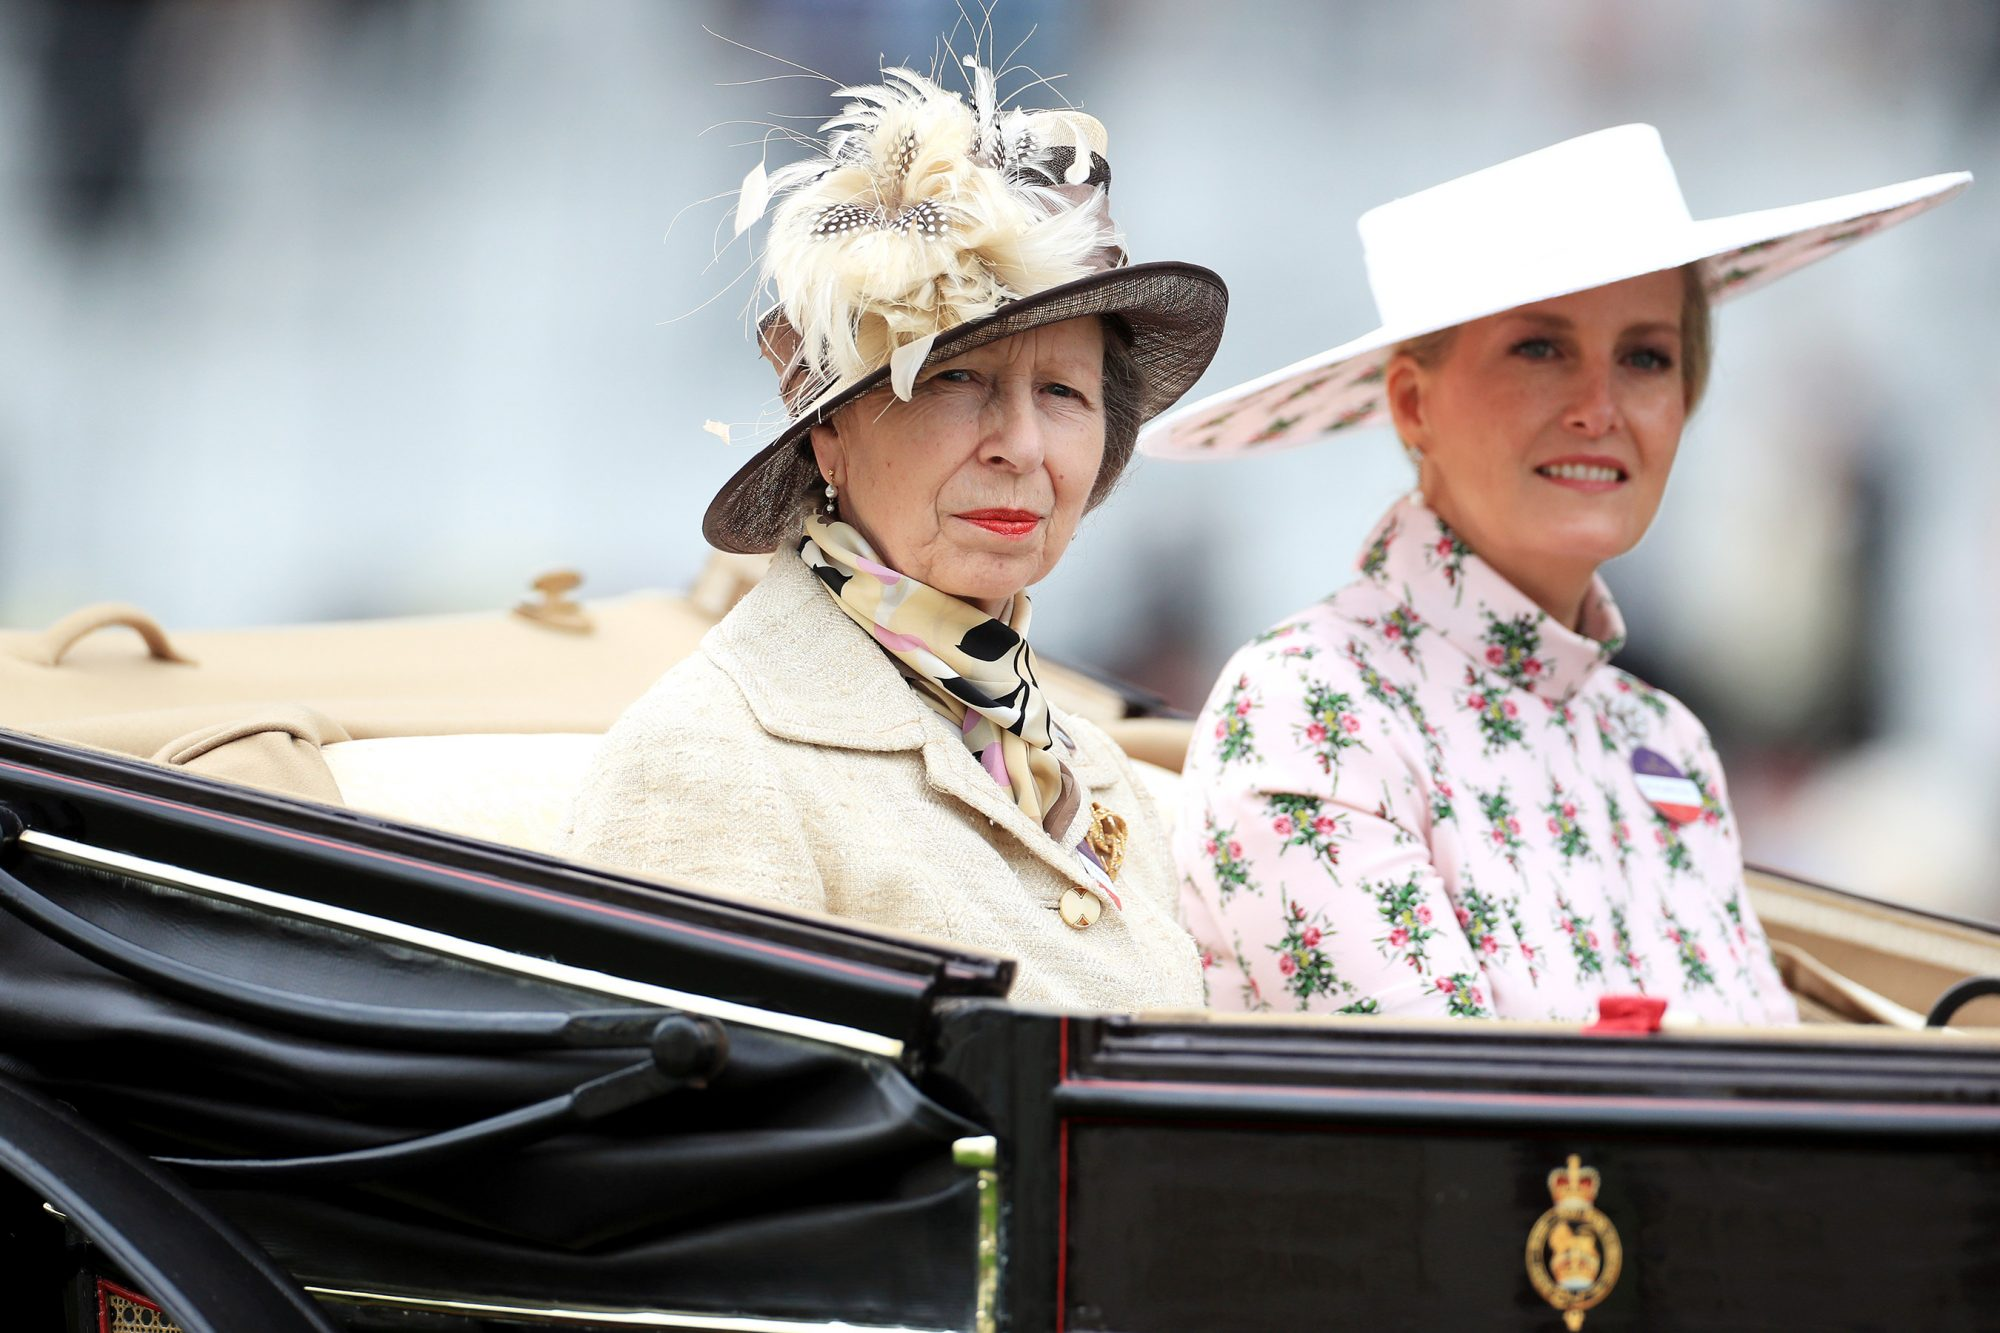 Royal Ascot Princess Royal (left) and the Countess of Wessex